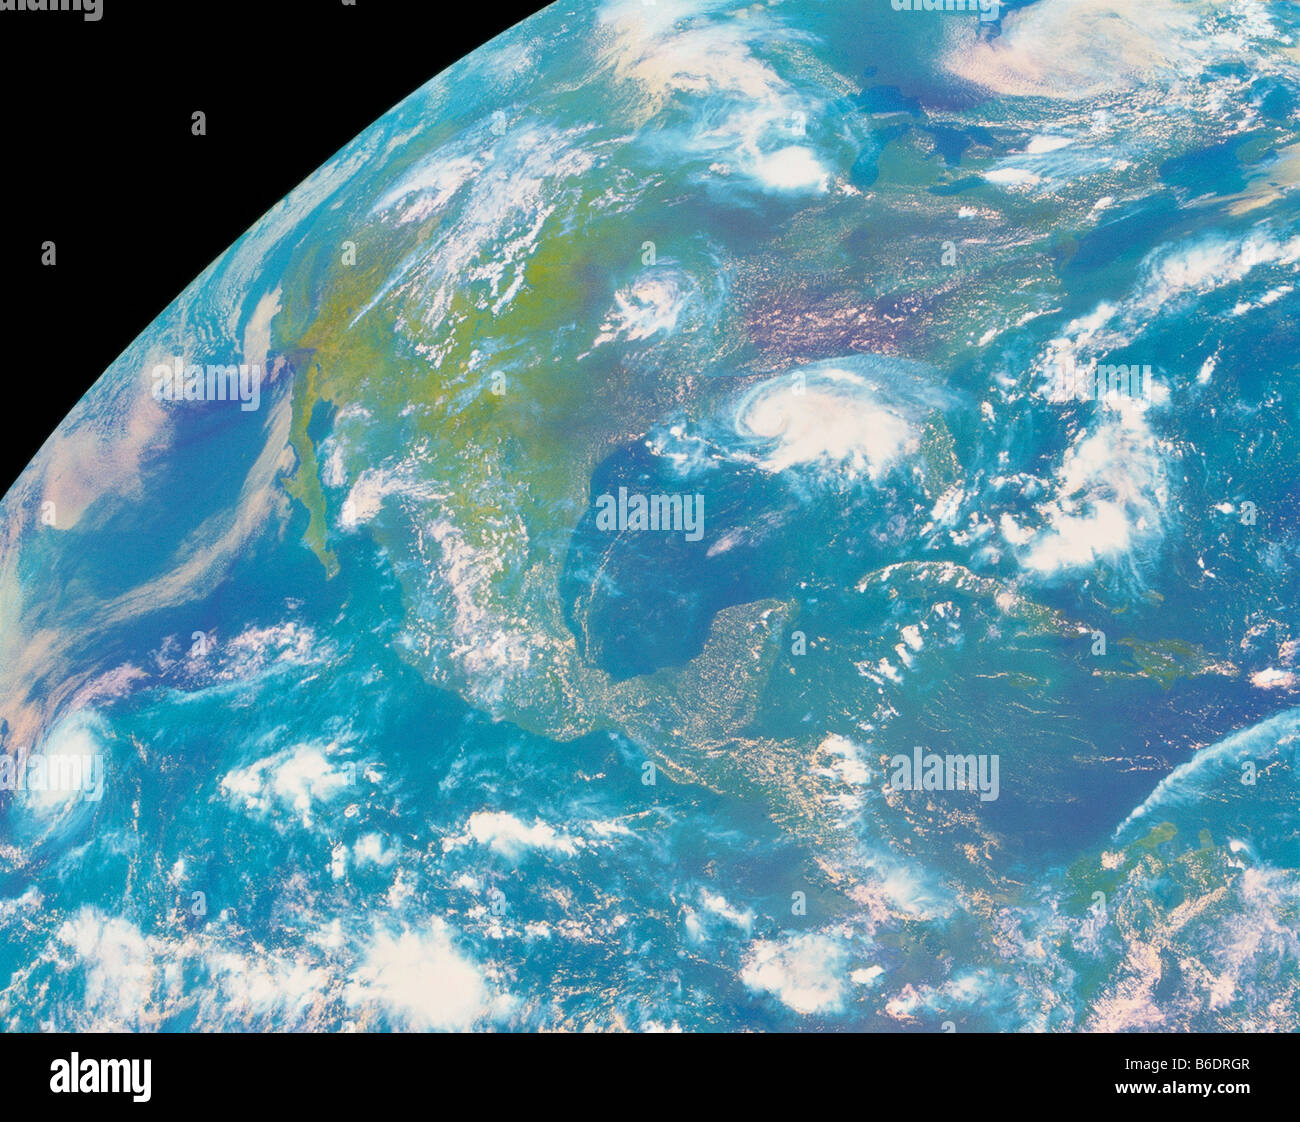 Americas. GOES satellite image of the Americas. North is towards the top right. - Stock Image